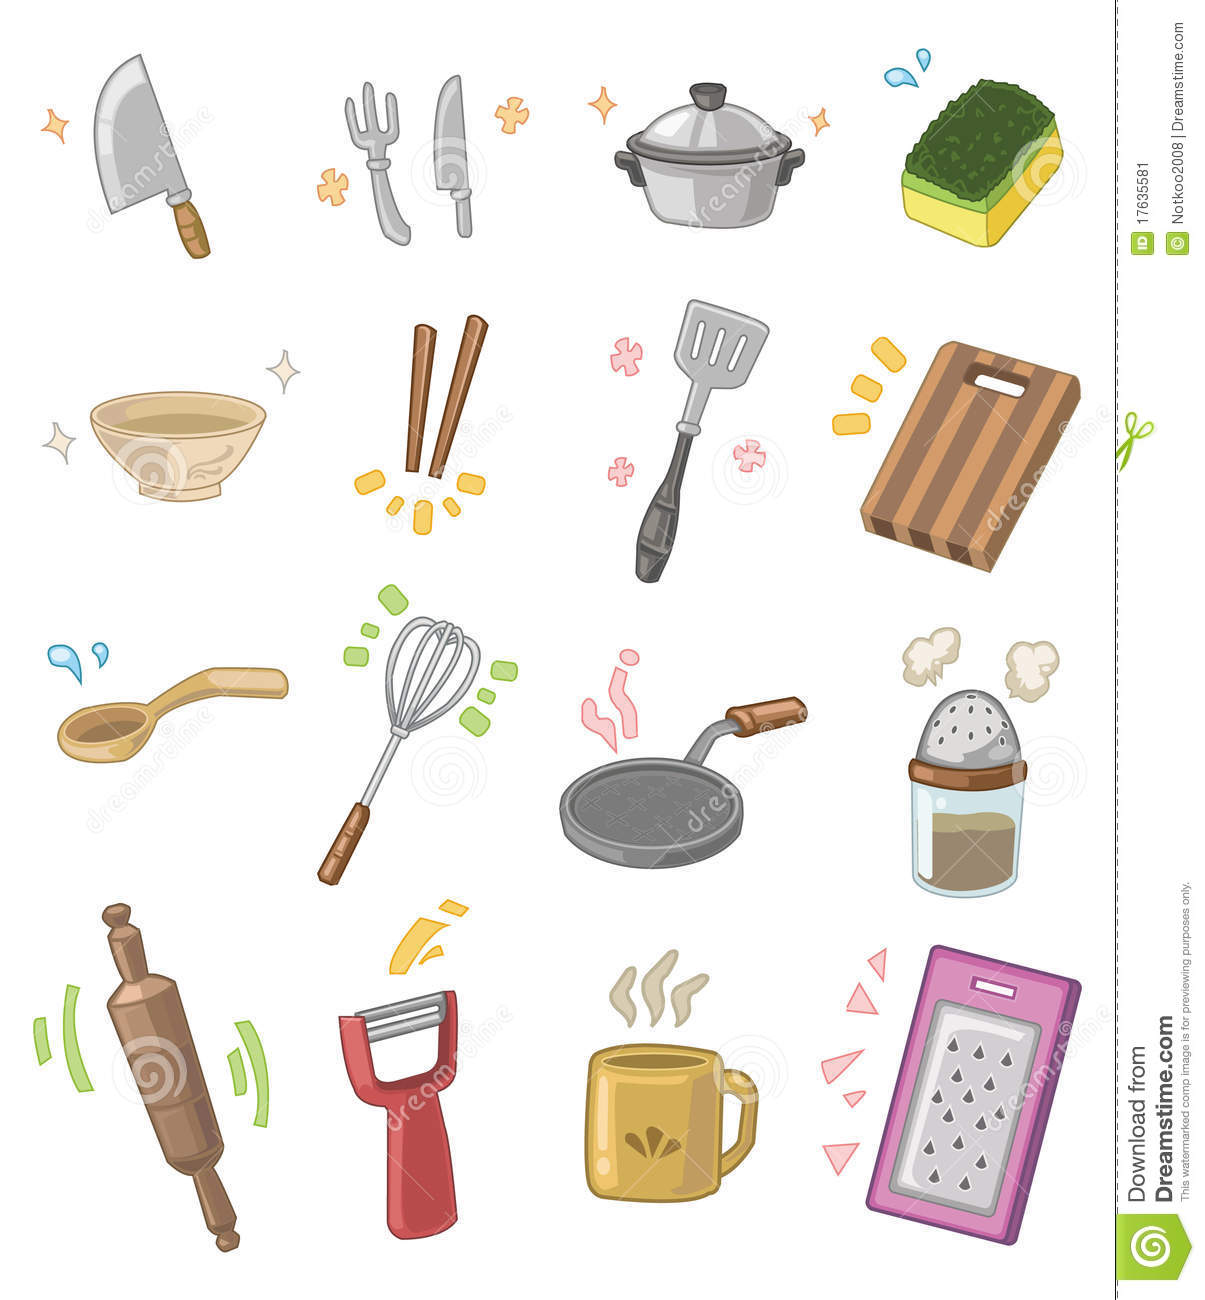 Cartoon Kitchen Utensils Stock Image - Image: 17635581